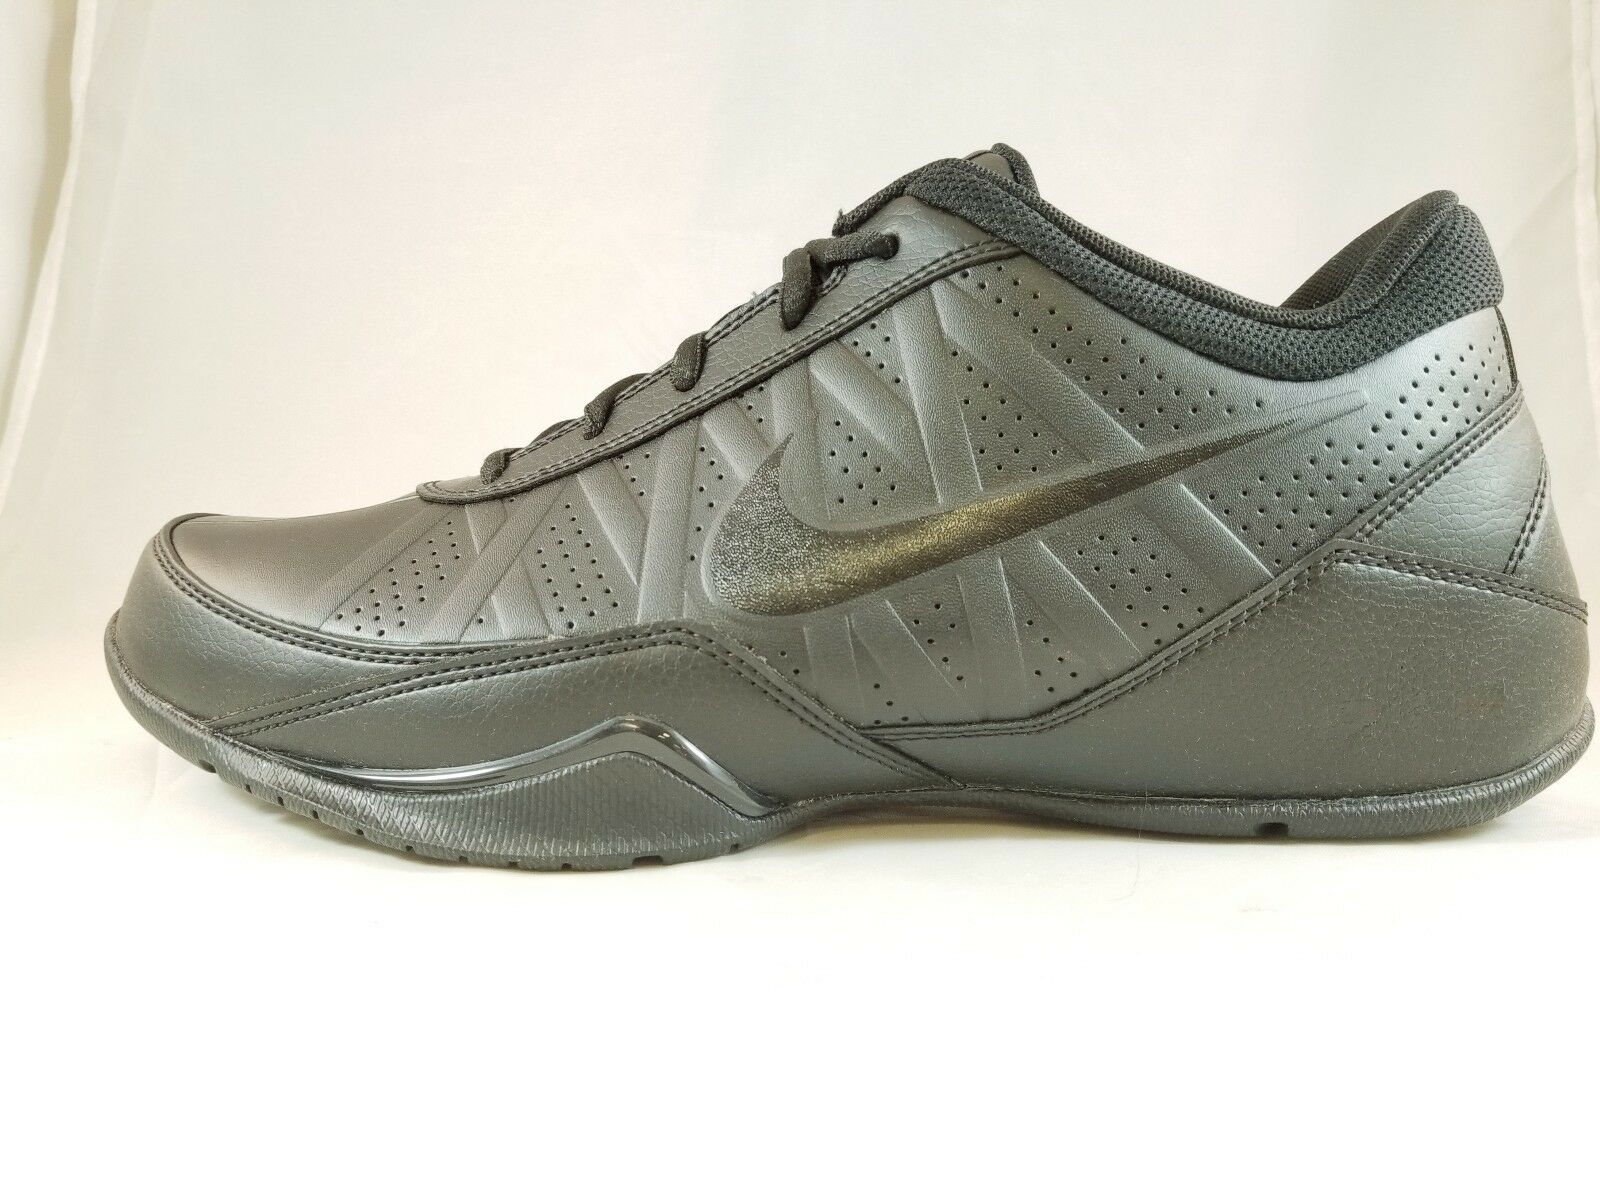 aed72f032004 Nike Air Ring Leader Low Men s Running Shoe 488102 001 001 001 Size 11  d5127b